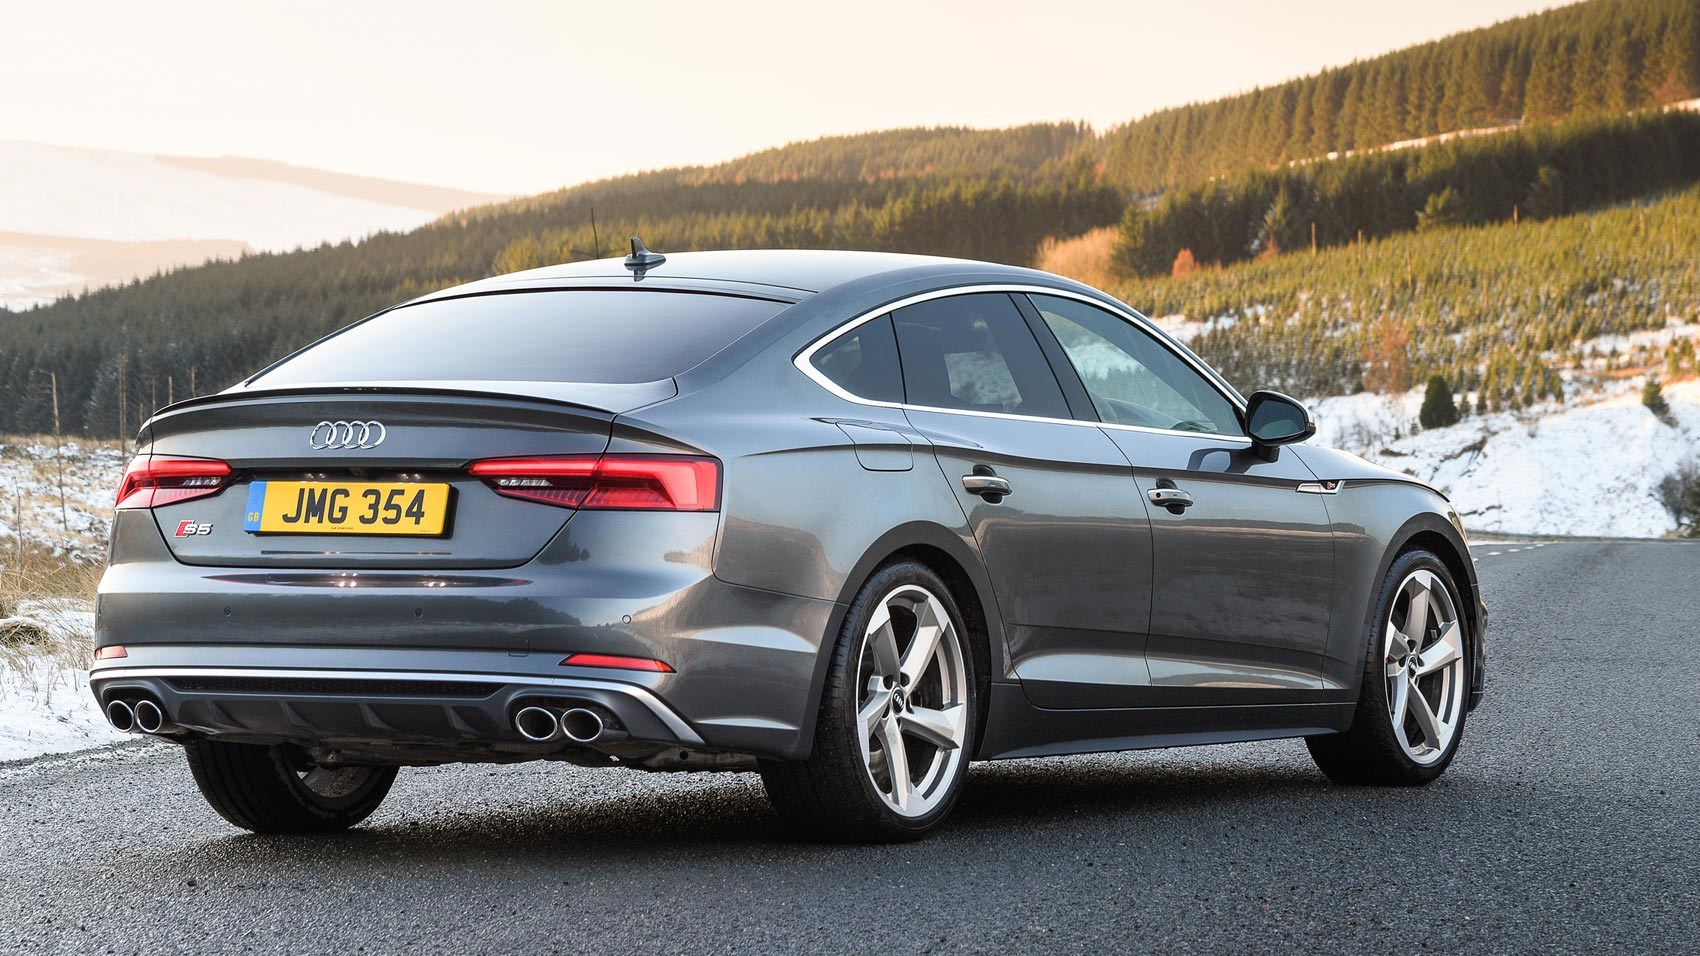 Audi s5 sportback 2017 review by car magazine - Audi S5 Sportback 2017 Review By Car Magazine 1